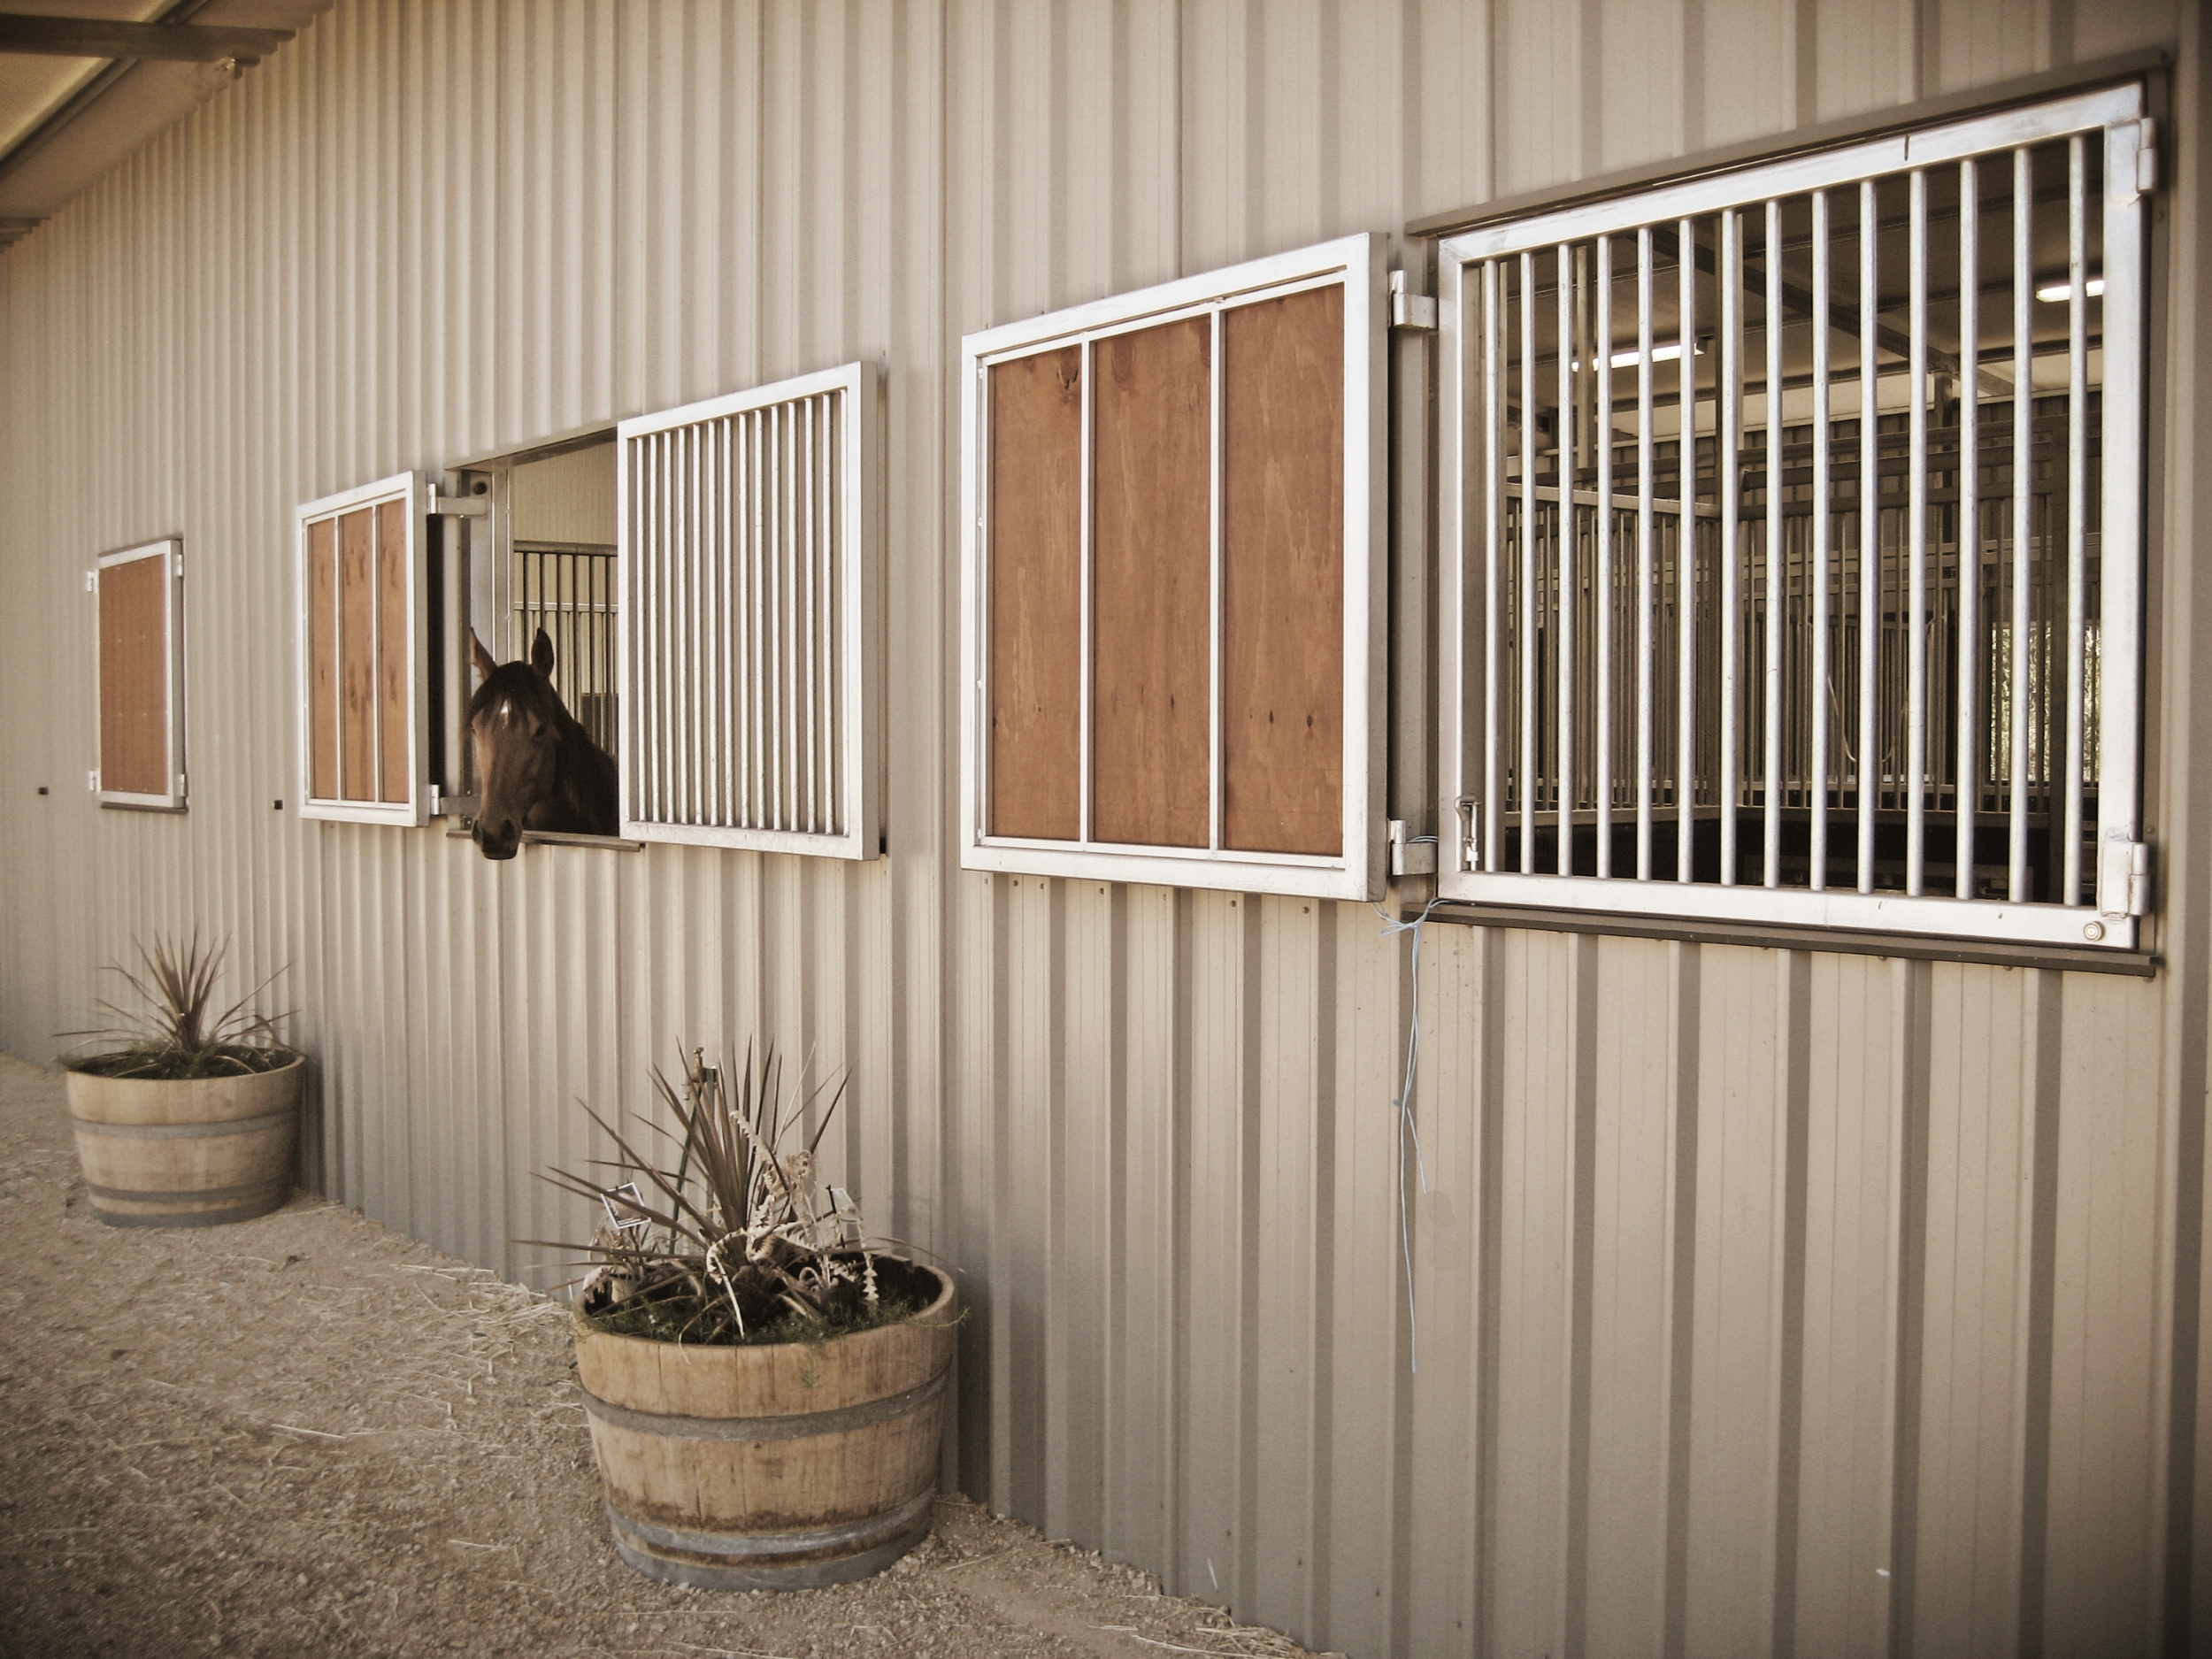 Keysborough Equine